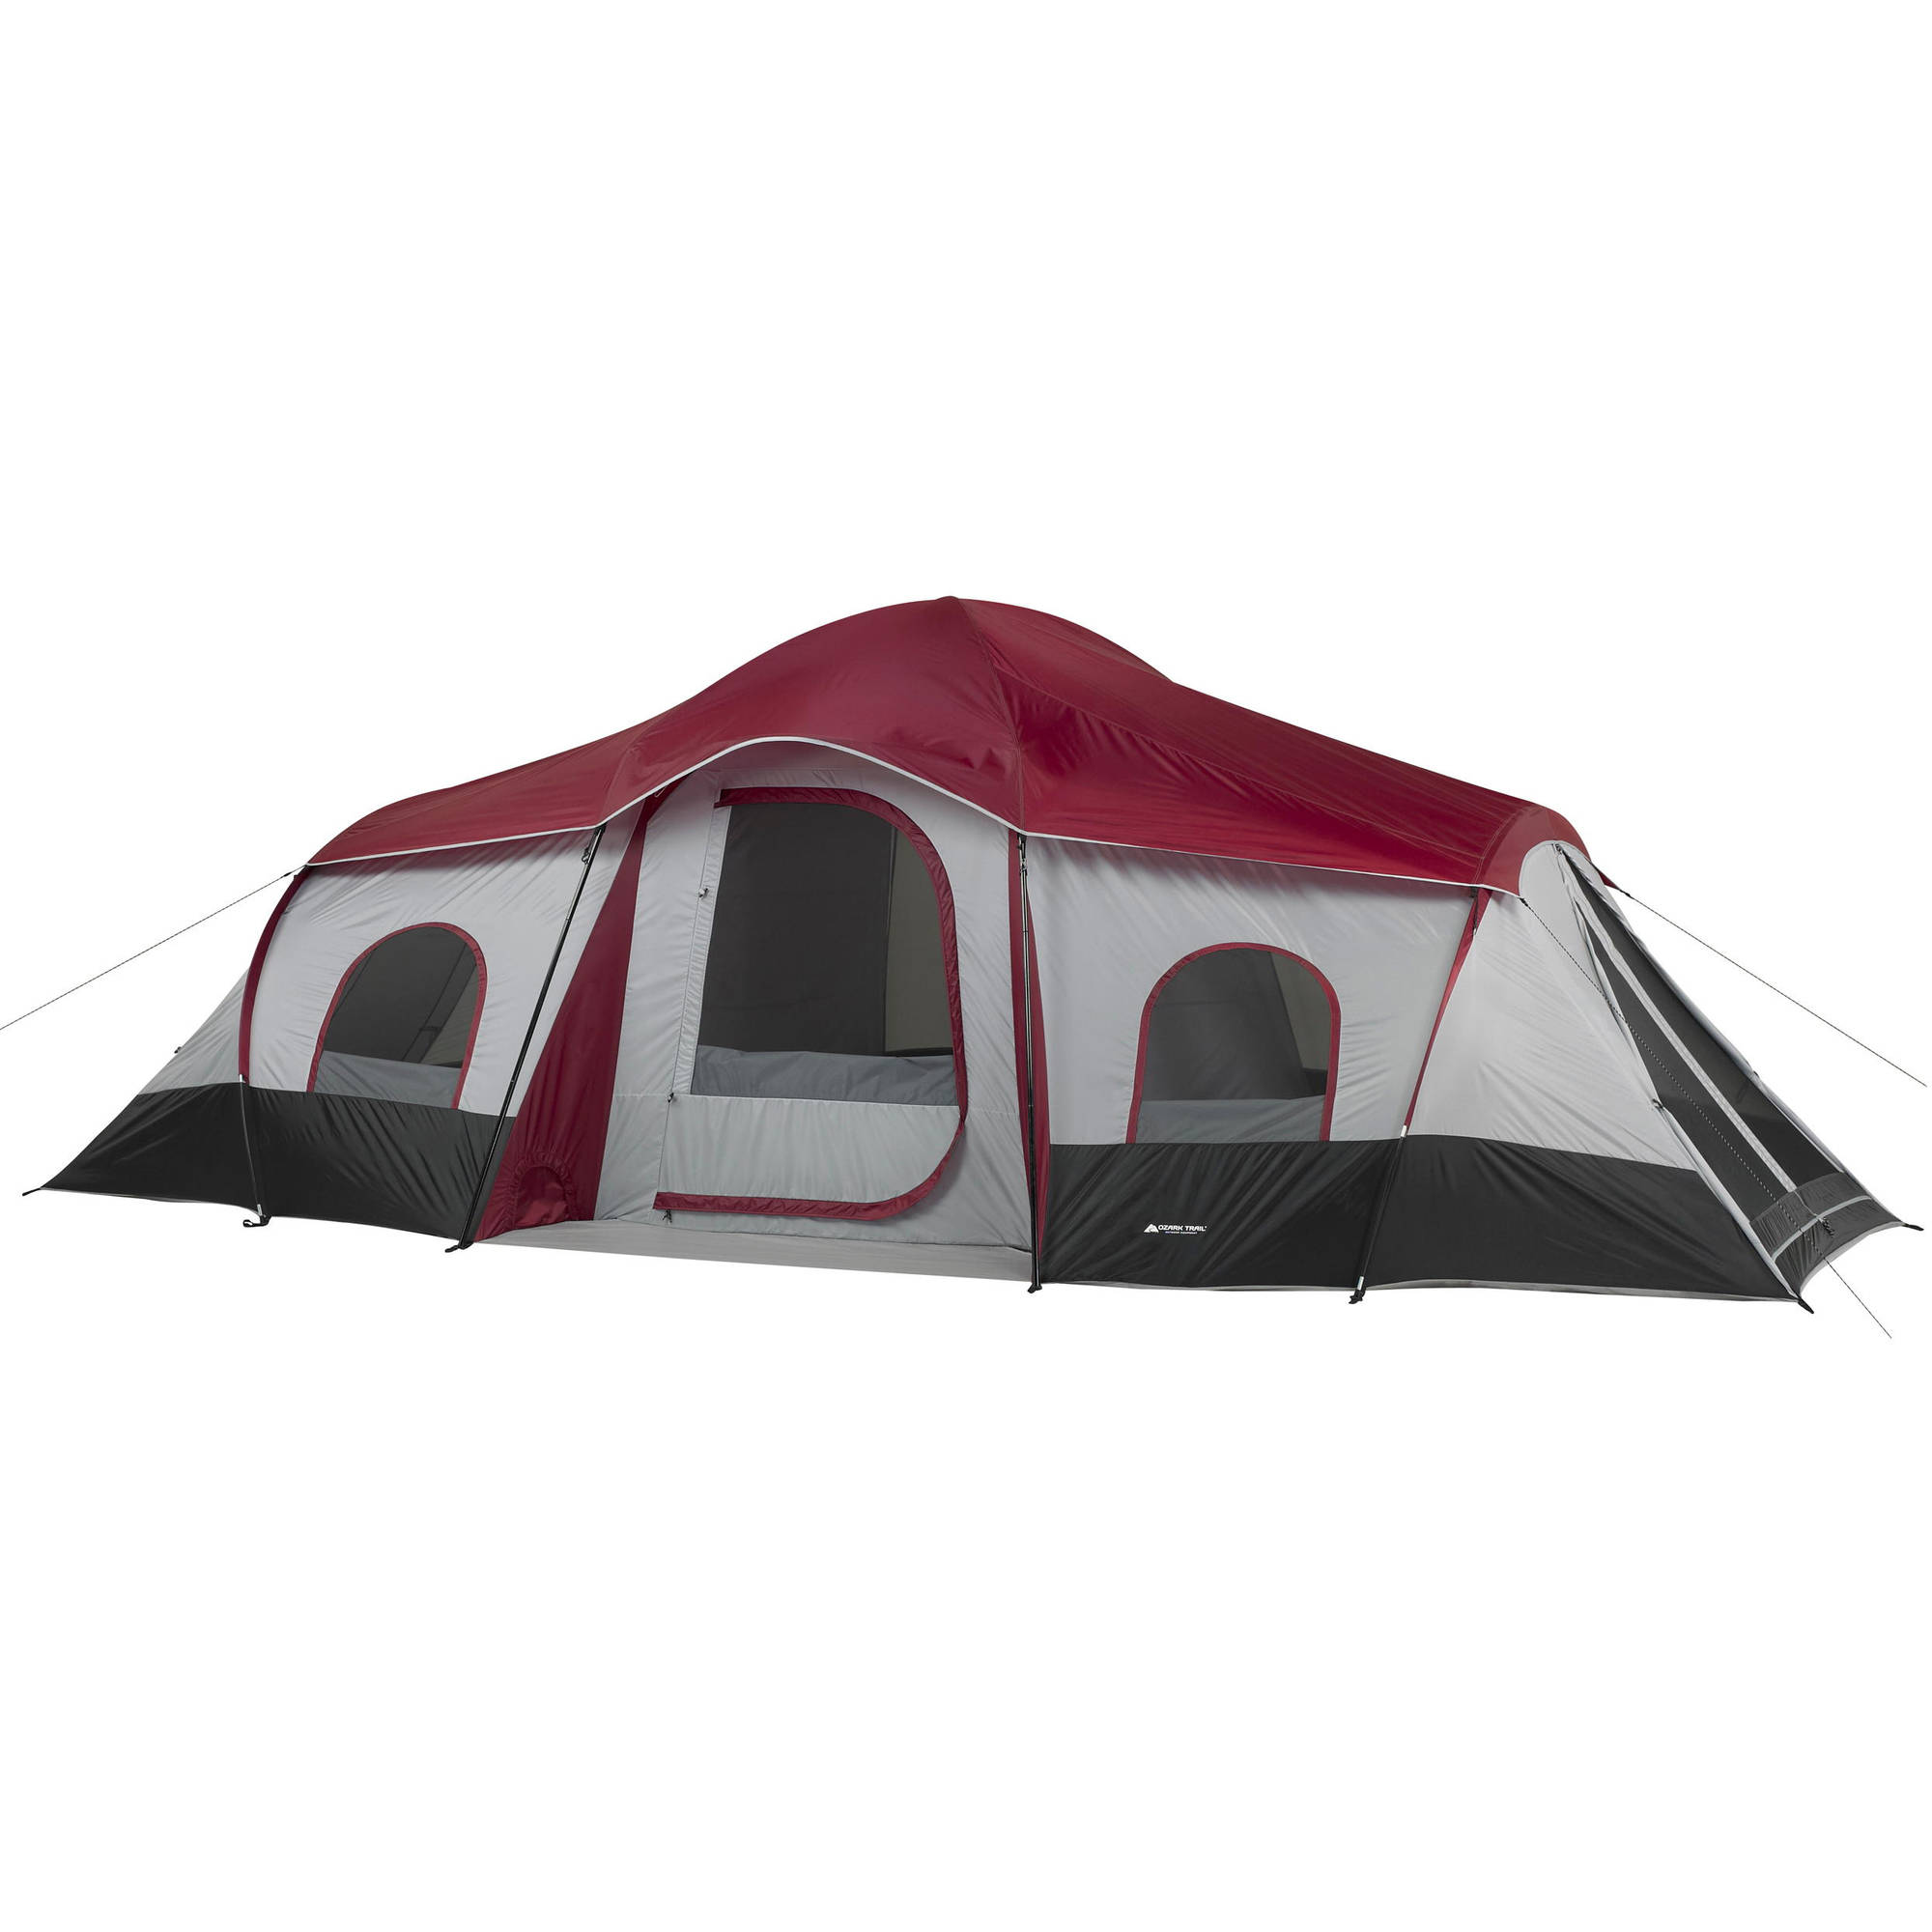 Details about Ozark Trail 10 Person 3-Room Instant Cabin Tent Large Outdoor  Camping Light Easy